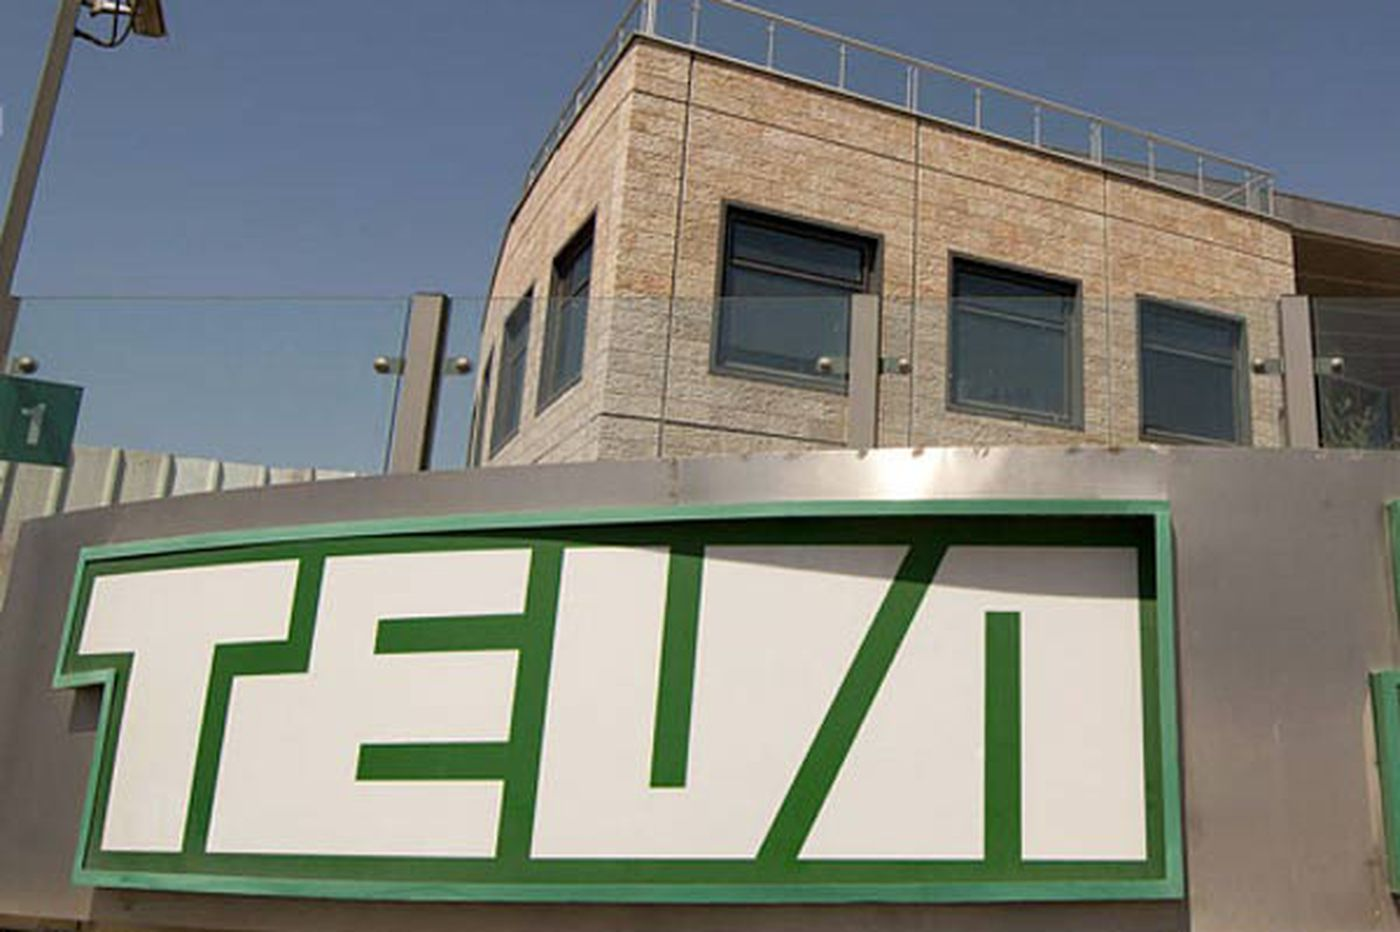 Teva Pharmaceuticals cancels plans for a new complex in Northeast Philadelphia